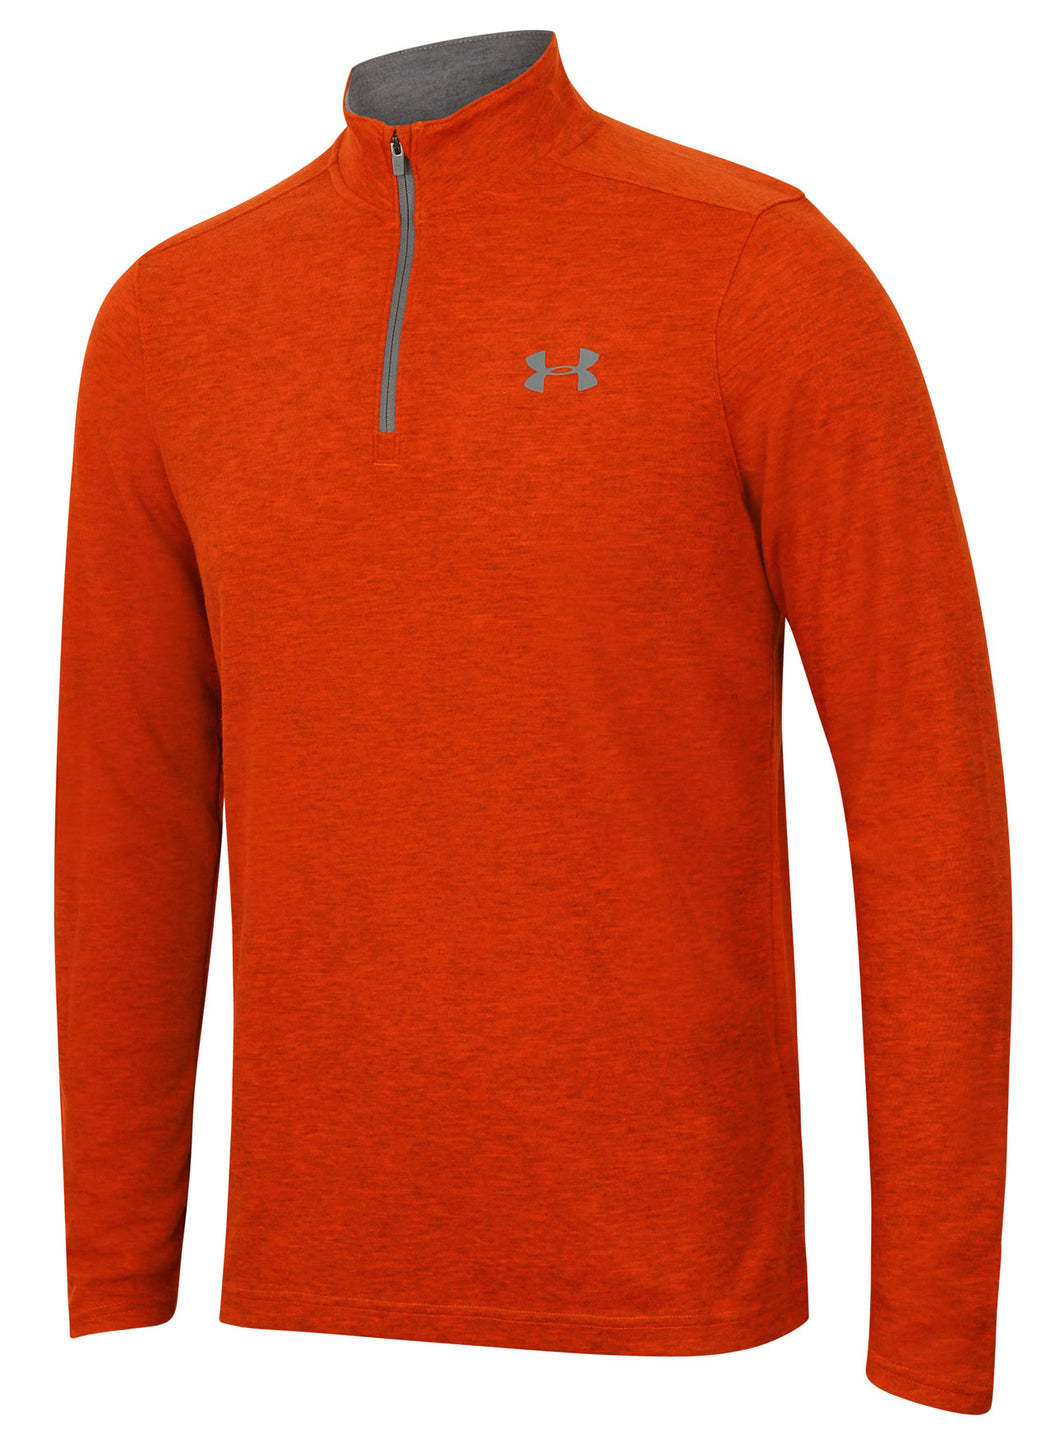 Under Armour Men's ColdGear Infrared Lightweight Red Long Sleeve 1/4 Zip Training Top